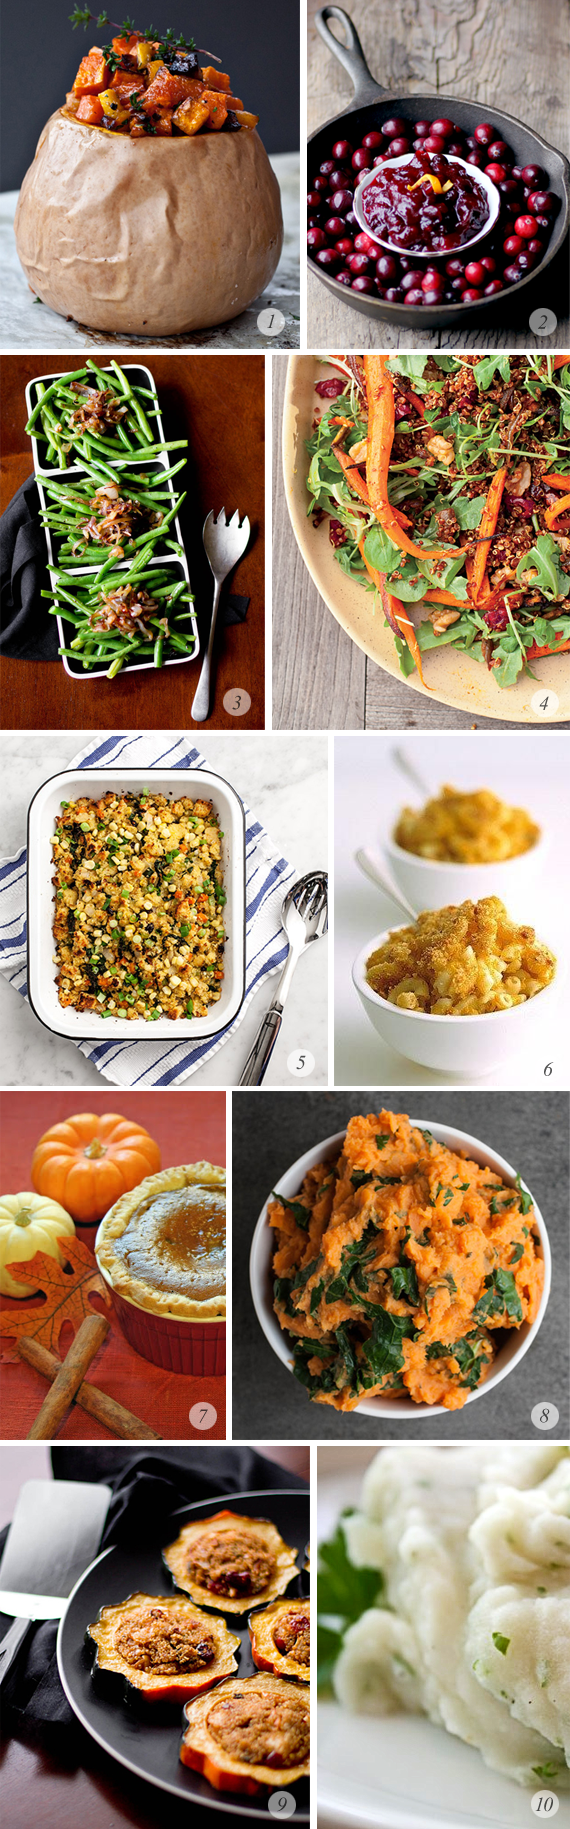 10 Great Vegetarian Thanksgiving Recipes // Bubby and Bean